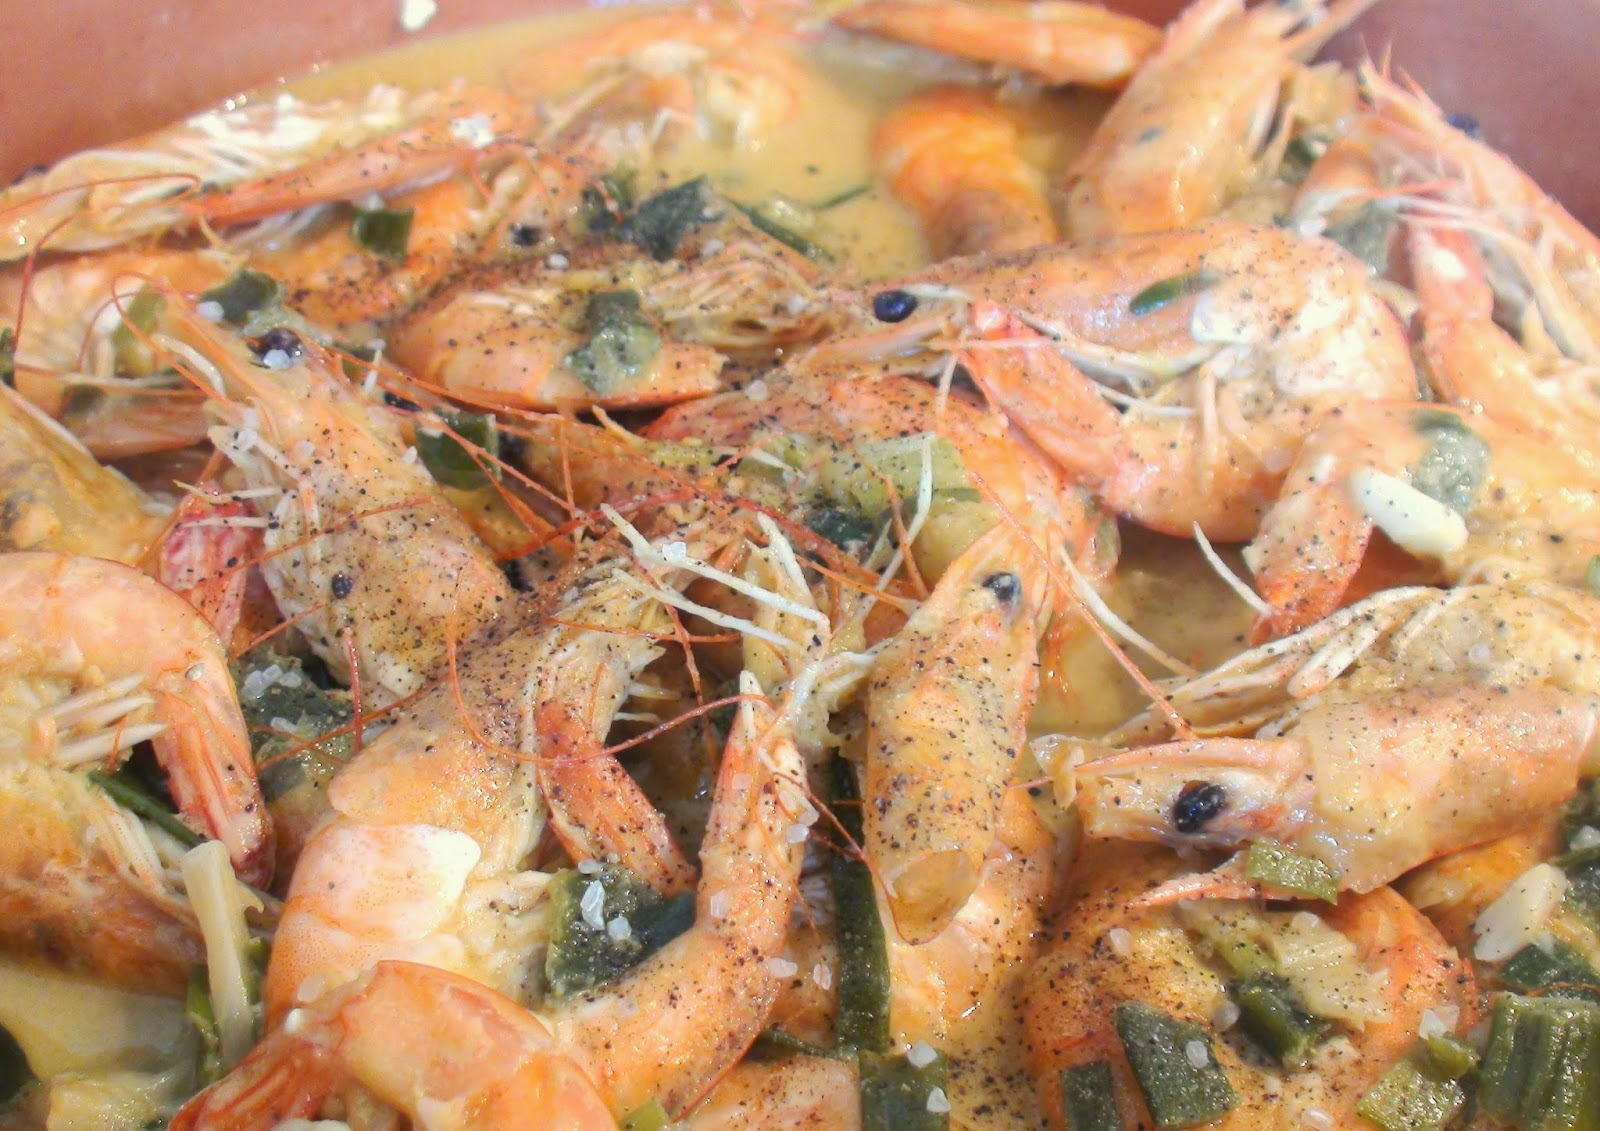 Shrimps with saffron and mustard